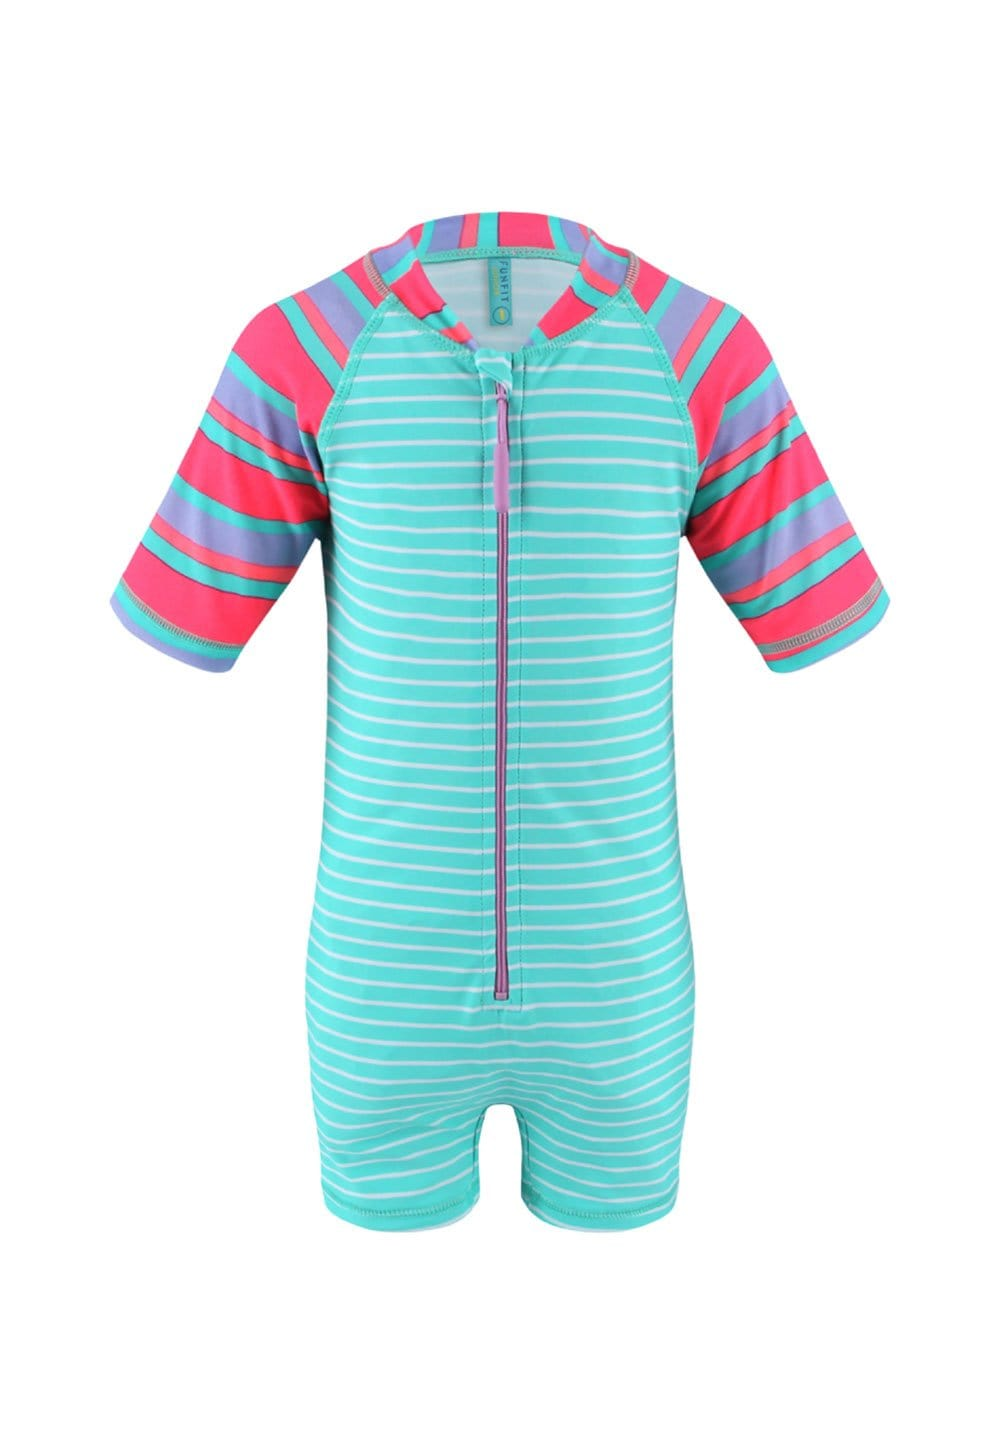 FUNFIT UPF50+ Junior Sunsuit Half Sleeve (Unisex) in Contrast Bubblegum Print